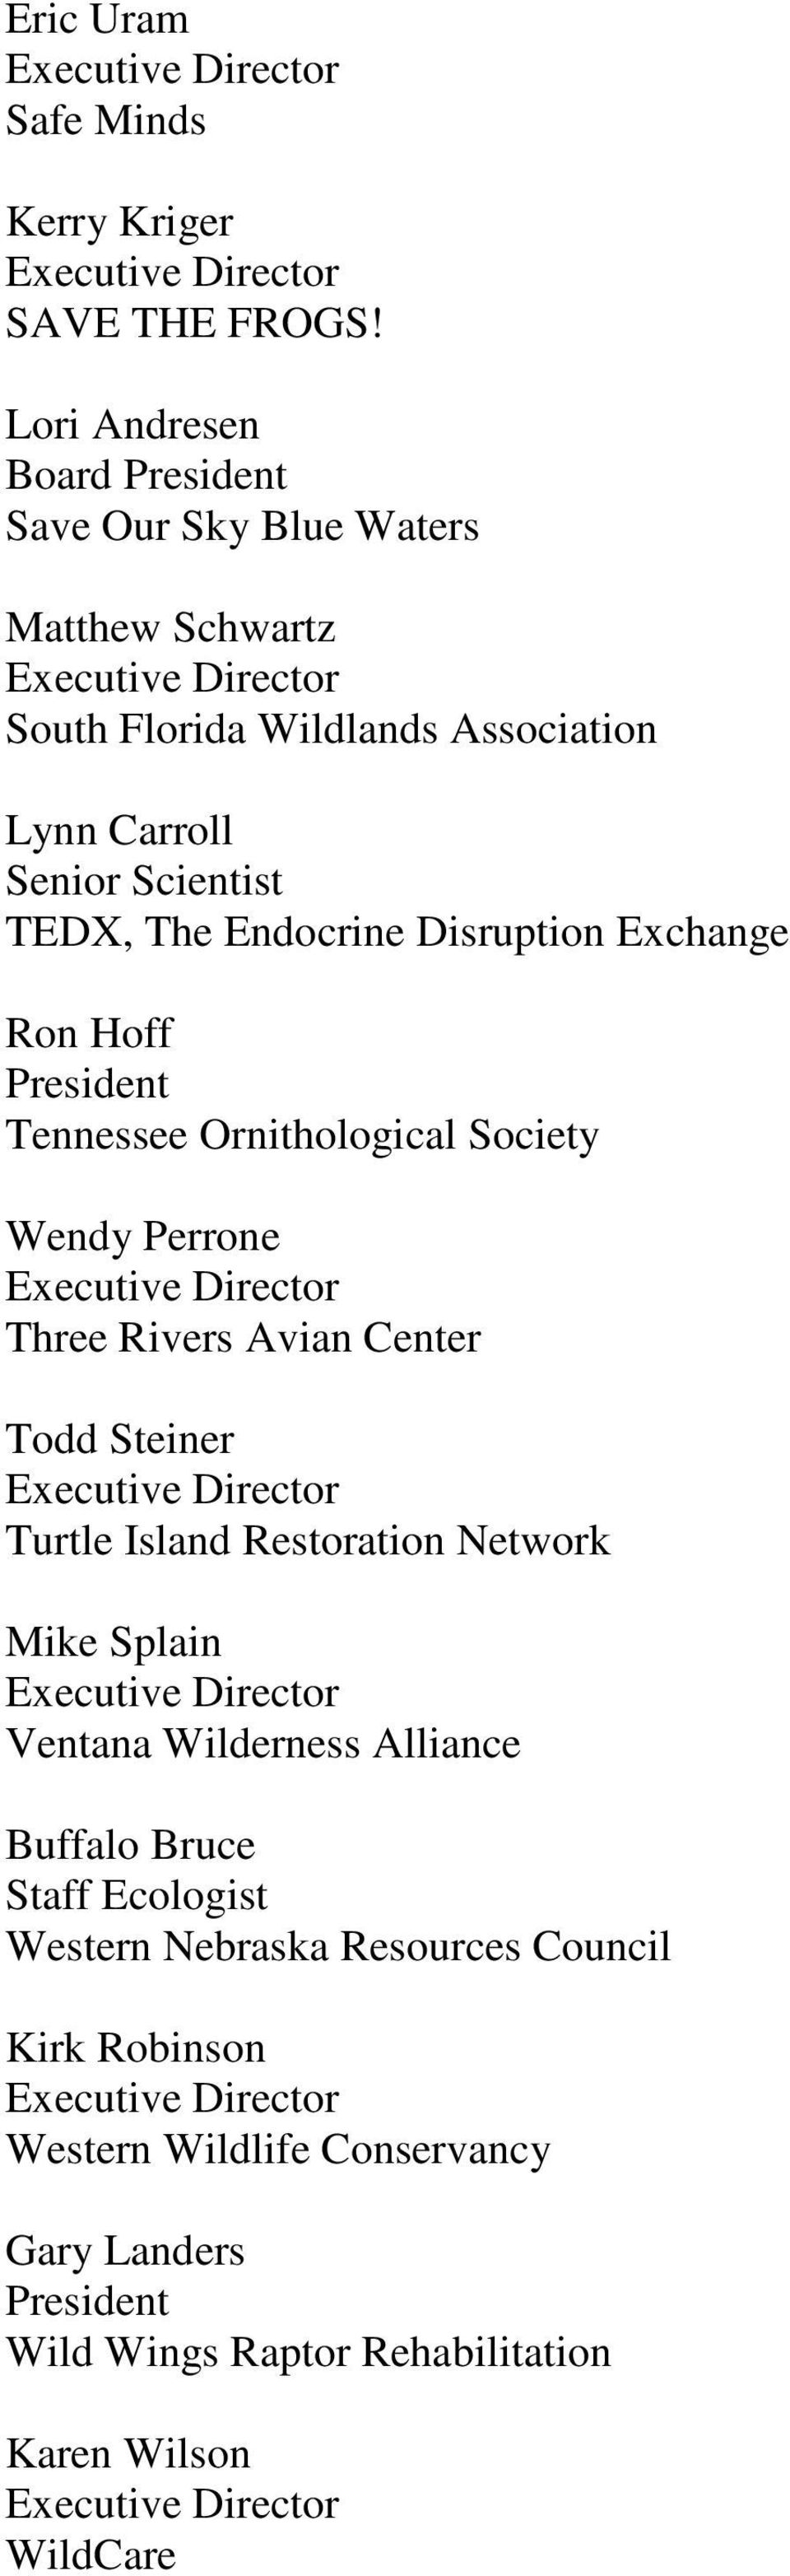 Endocrine Disruption Exchange Ron Hoff Tennessee Ornithological Society Wendy Perrone Three Rivers Avian Center Todd Steiner Turtle Island